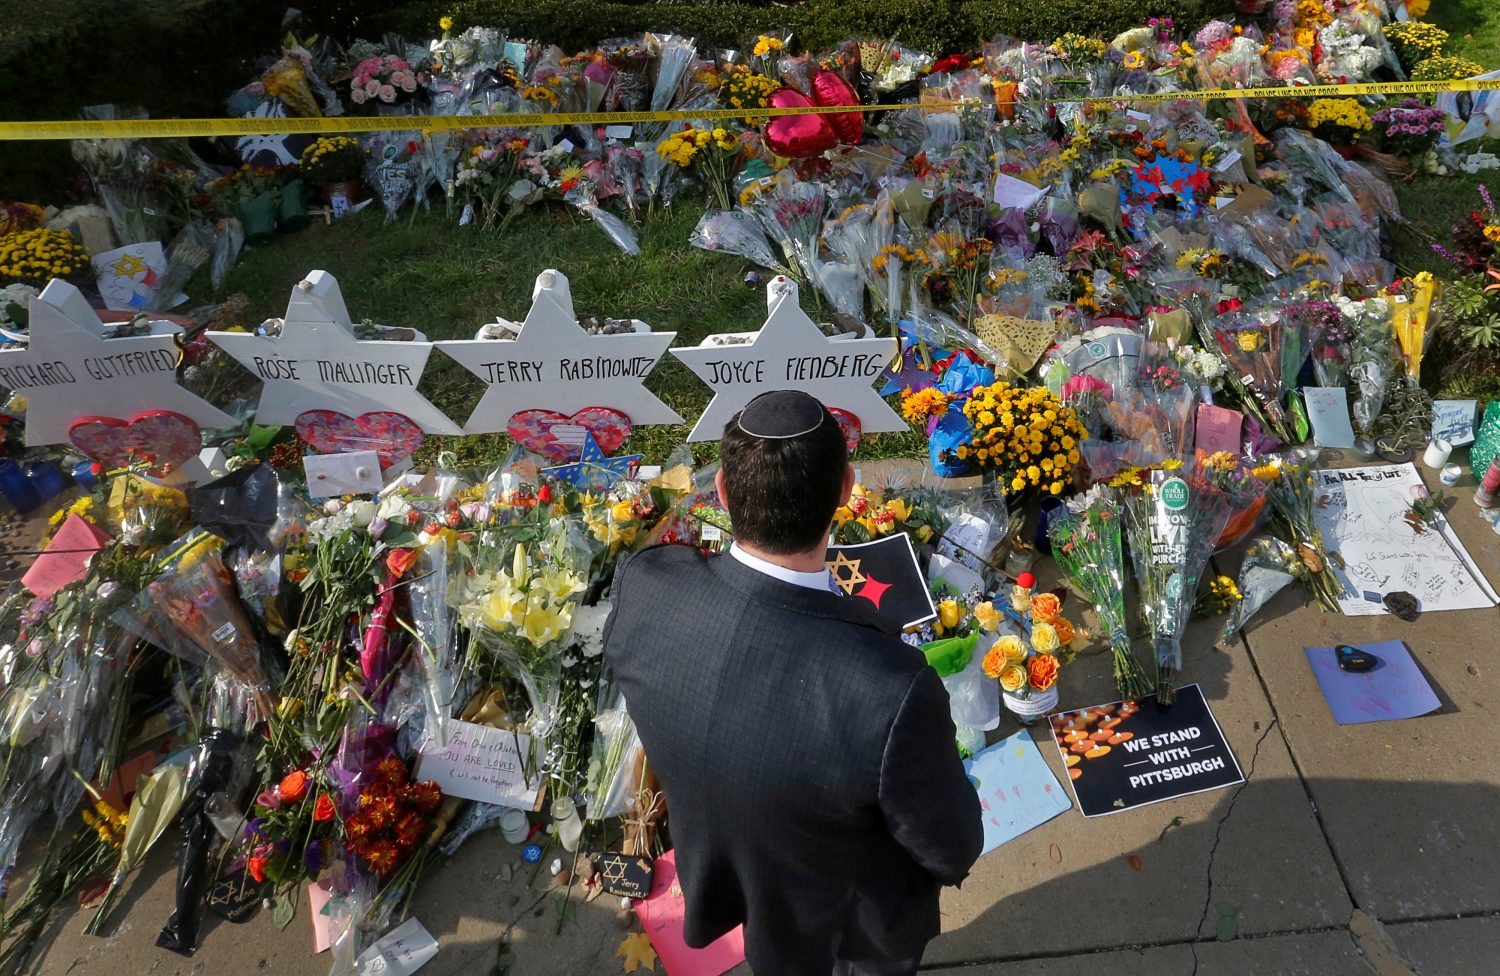 FILE PHOTO: A man prays at a makeshift memorial outside the Tree of Life synagogue following Saturday's shooting at the synagogue in Pittsburgh, Pennsylvania, U.S., October 31, 2018. REUTERS/Cathal McNaughton/File Photo